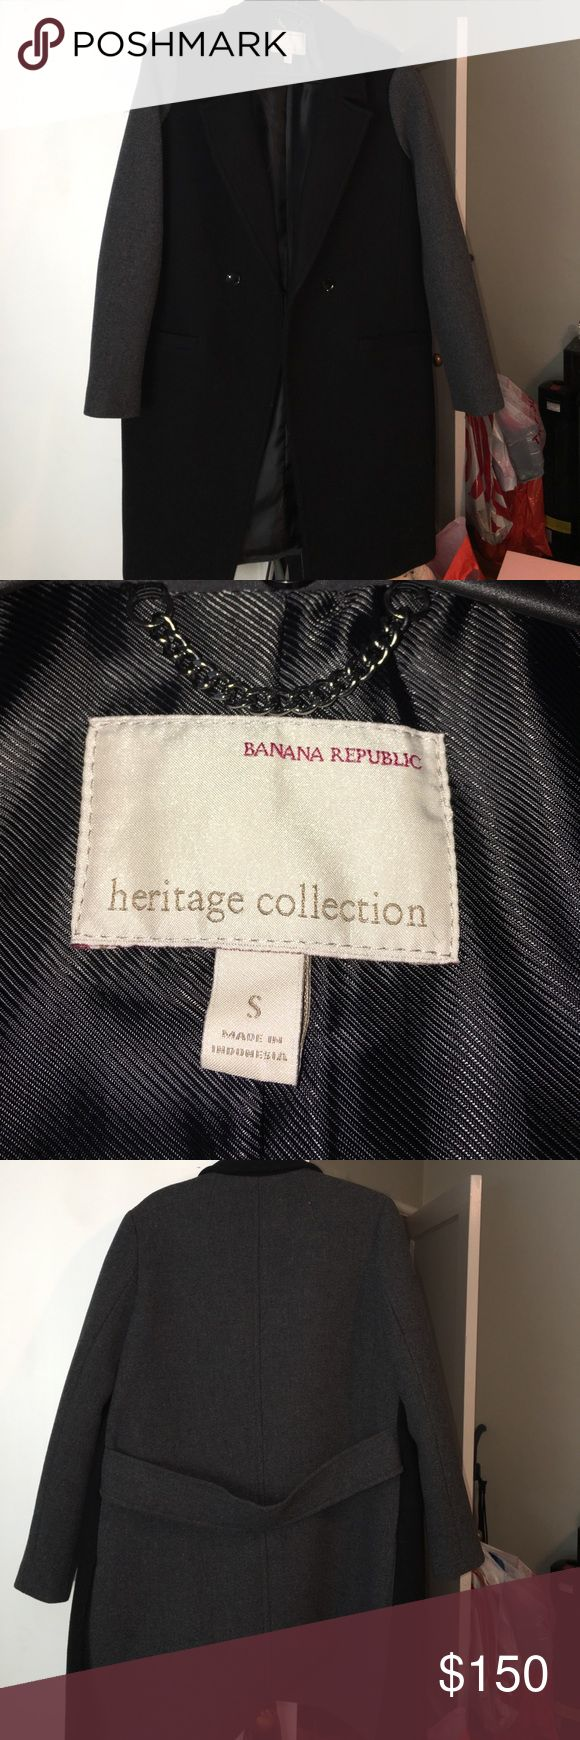 Brand new Banana Republic Heritage collection Cute coat for sale NWOT comes with coat bag. Runs really big. (Oversized) I'm usually a M-L. This is a size small but will fit a true L-XL.  Also comes with a removable faux fur collar. :) Banana Republic Jackets & Coats Pea Coats